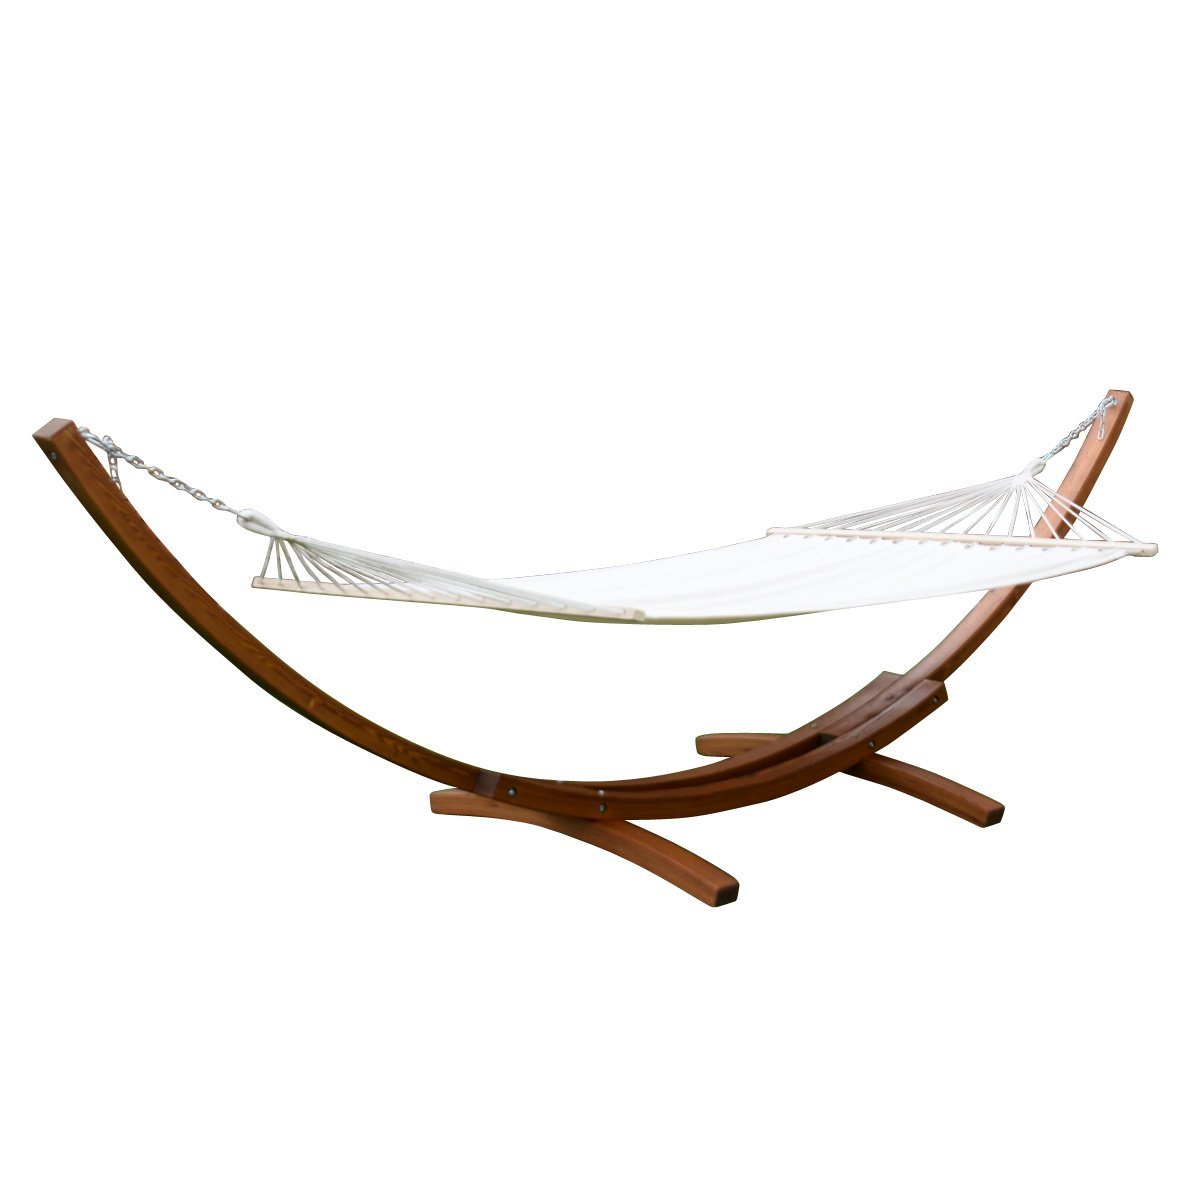 Giantex 161'' Wooden Curved Arc Hammock Stand W/ Hammocksize Outdoor Patio Garden Swing (161.4''X47.2''X48.0'')